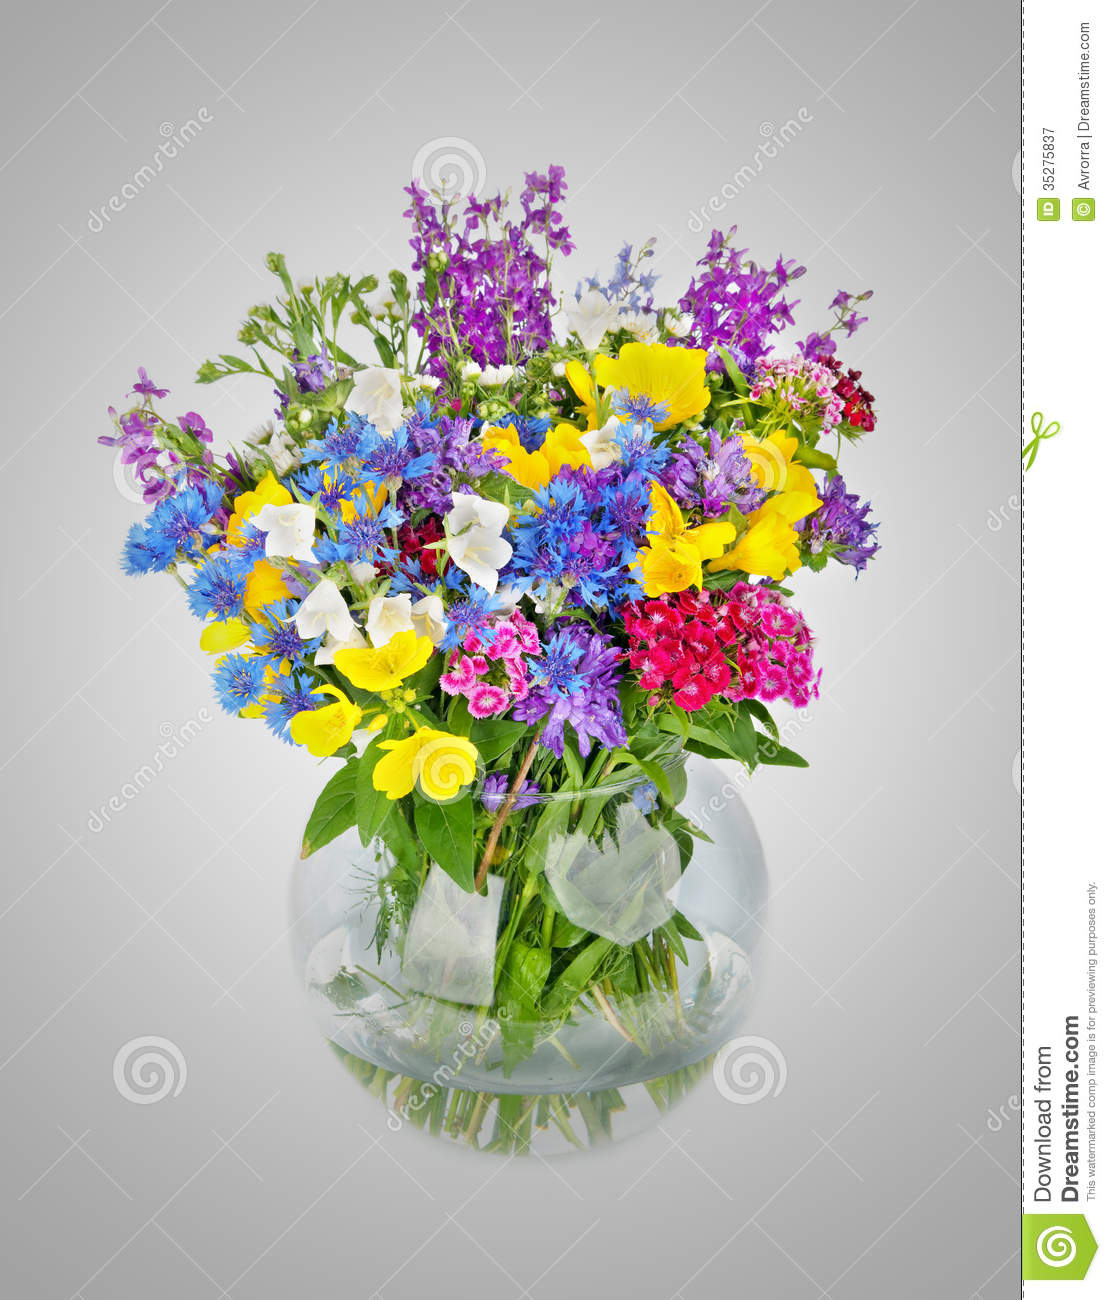 beautiful wild flowers bouquet in vase stock image image 35275837. Black Bedroom Furniture Sets. Home Design Ideas